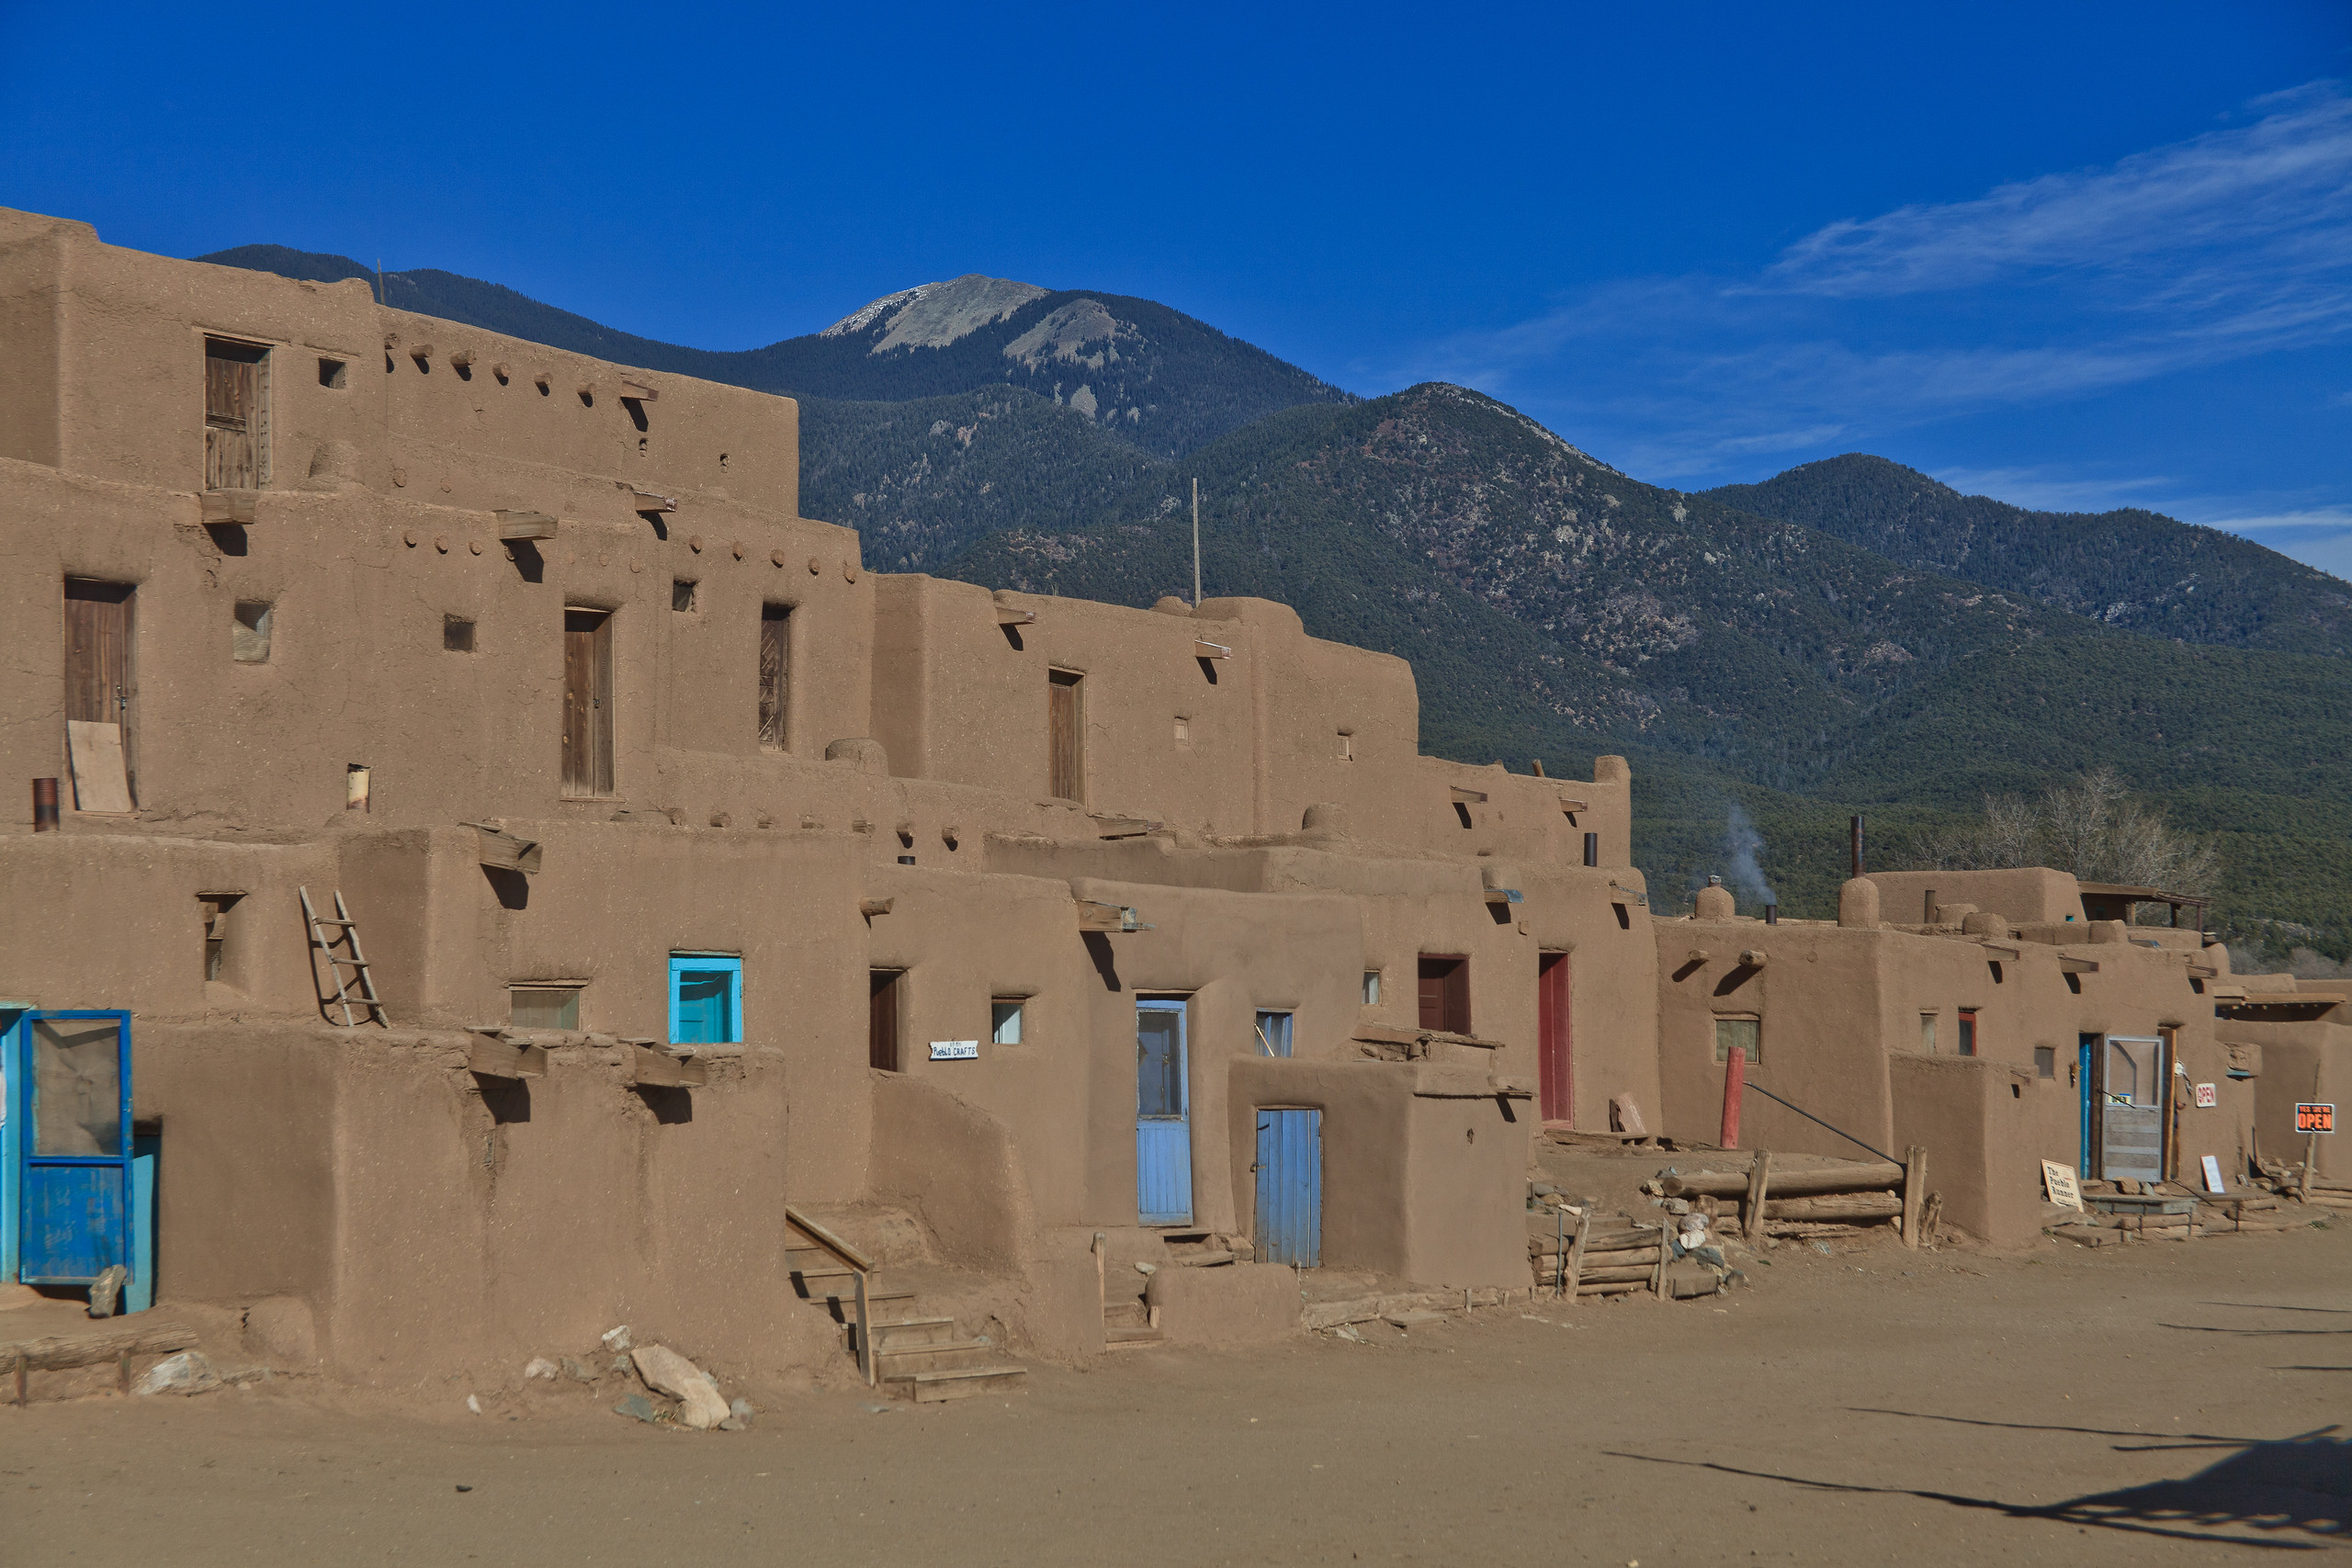 The ruins of Taos Pueblo in Taos, New Mexico, USA predates the Spanish arrival in the Americas.